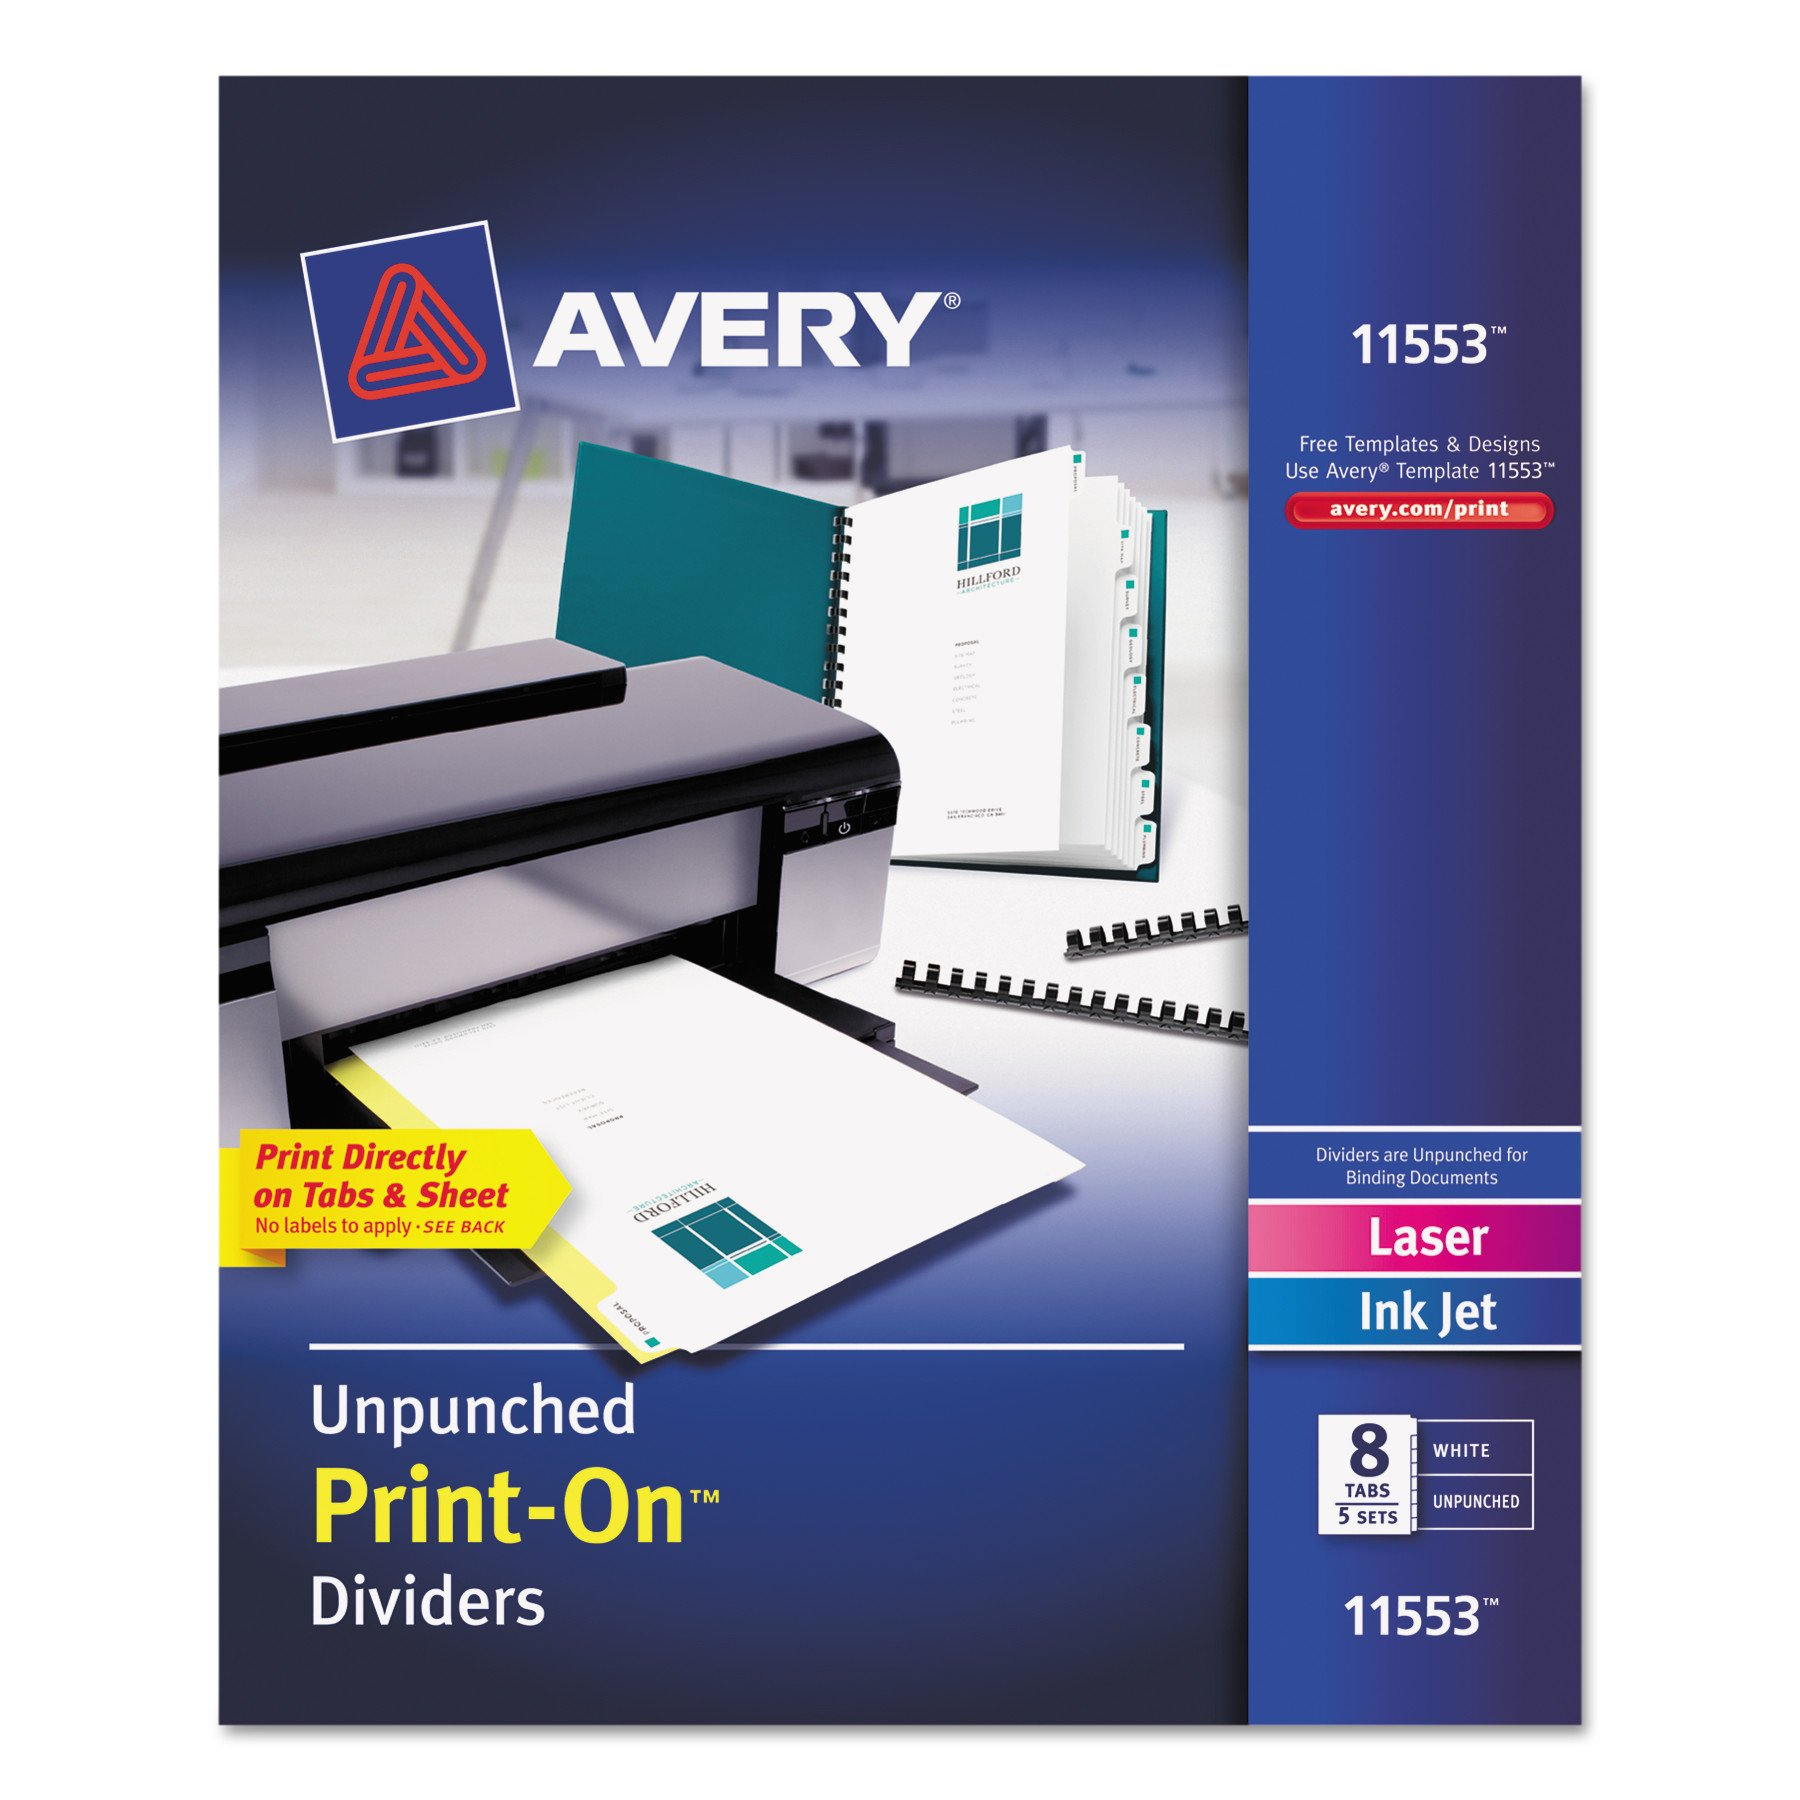 Avery Unpunched Print-On Dividers, White, 8 Tabs, 5 Sets (11553) by Avery